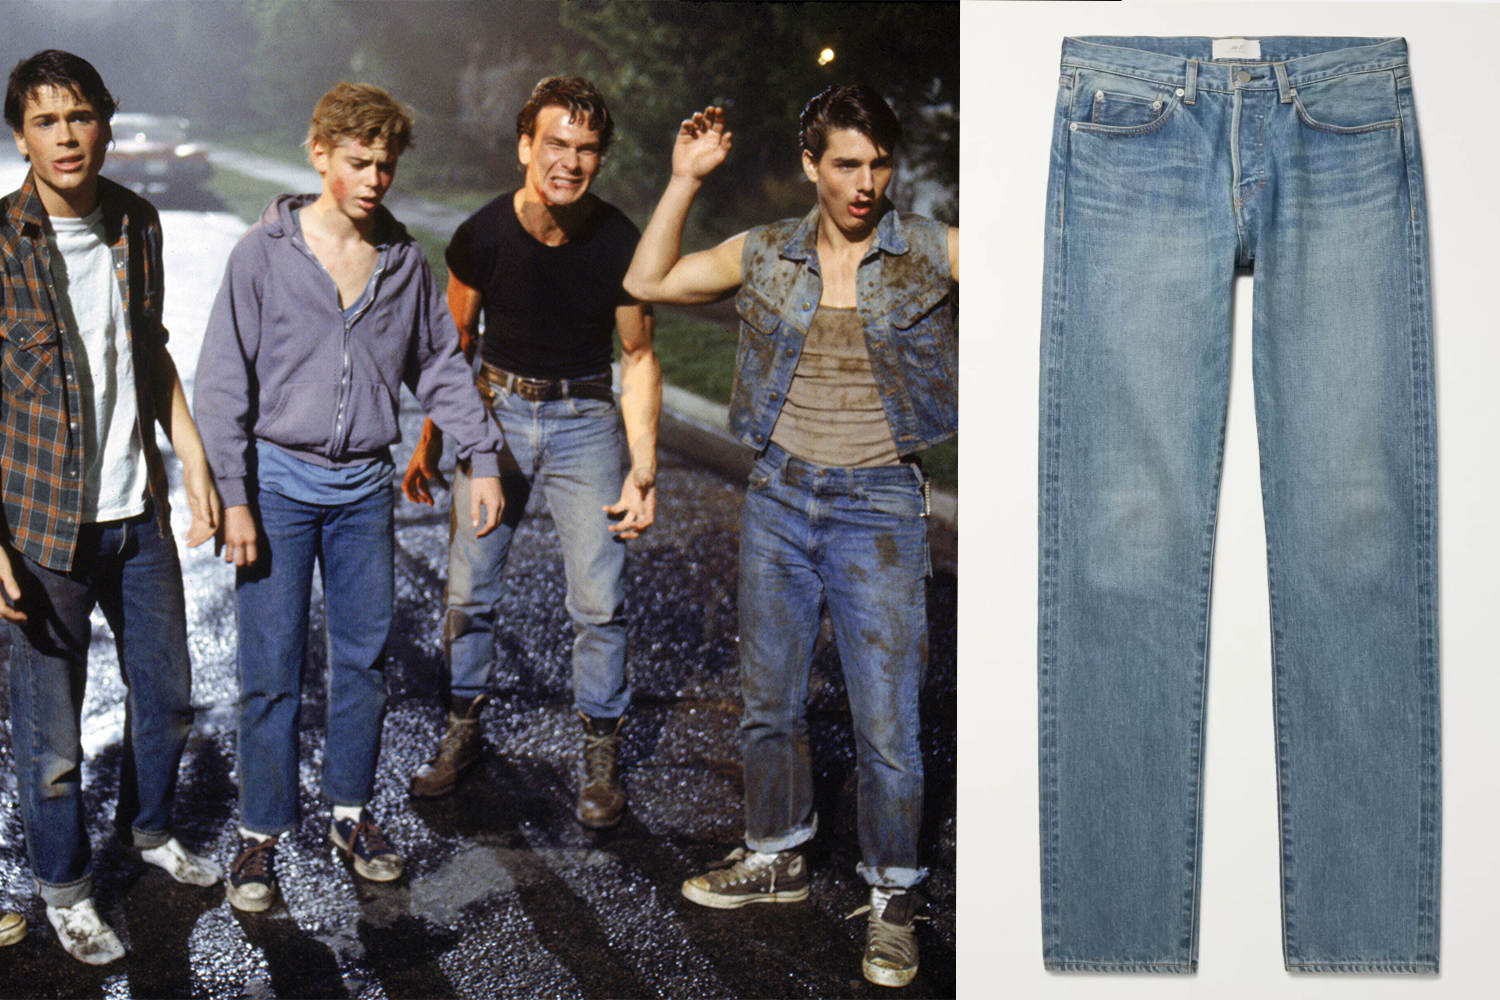 Rob Lowe, Thomas C. Howell, Patrick Swayze, and Tom Cruise on the set of The Outsiders